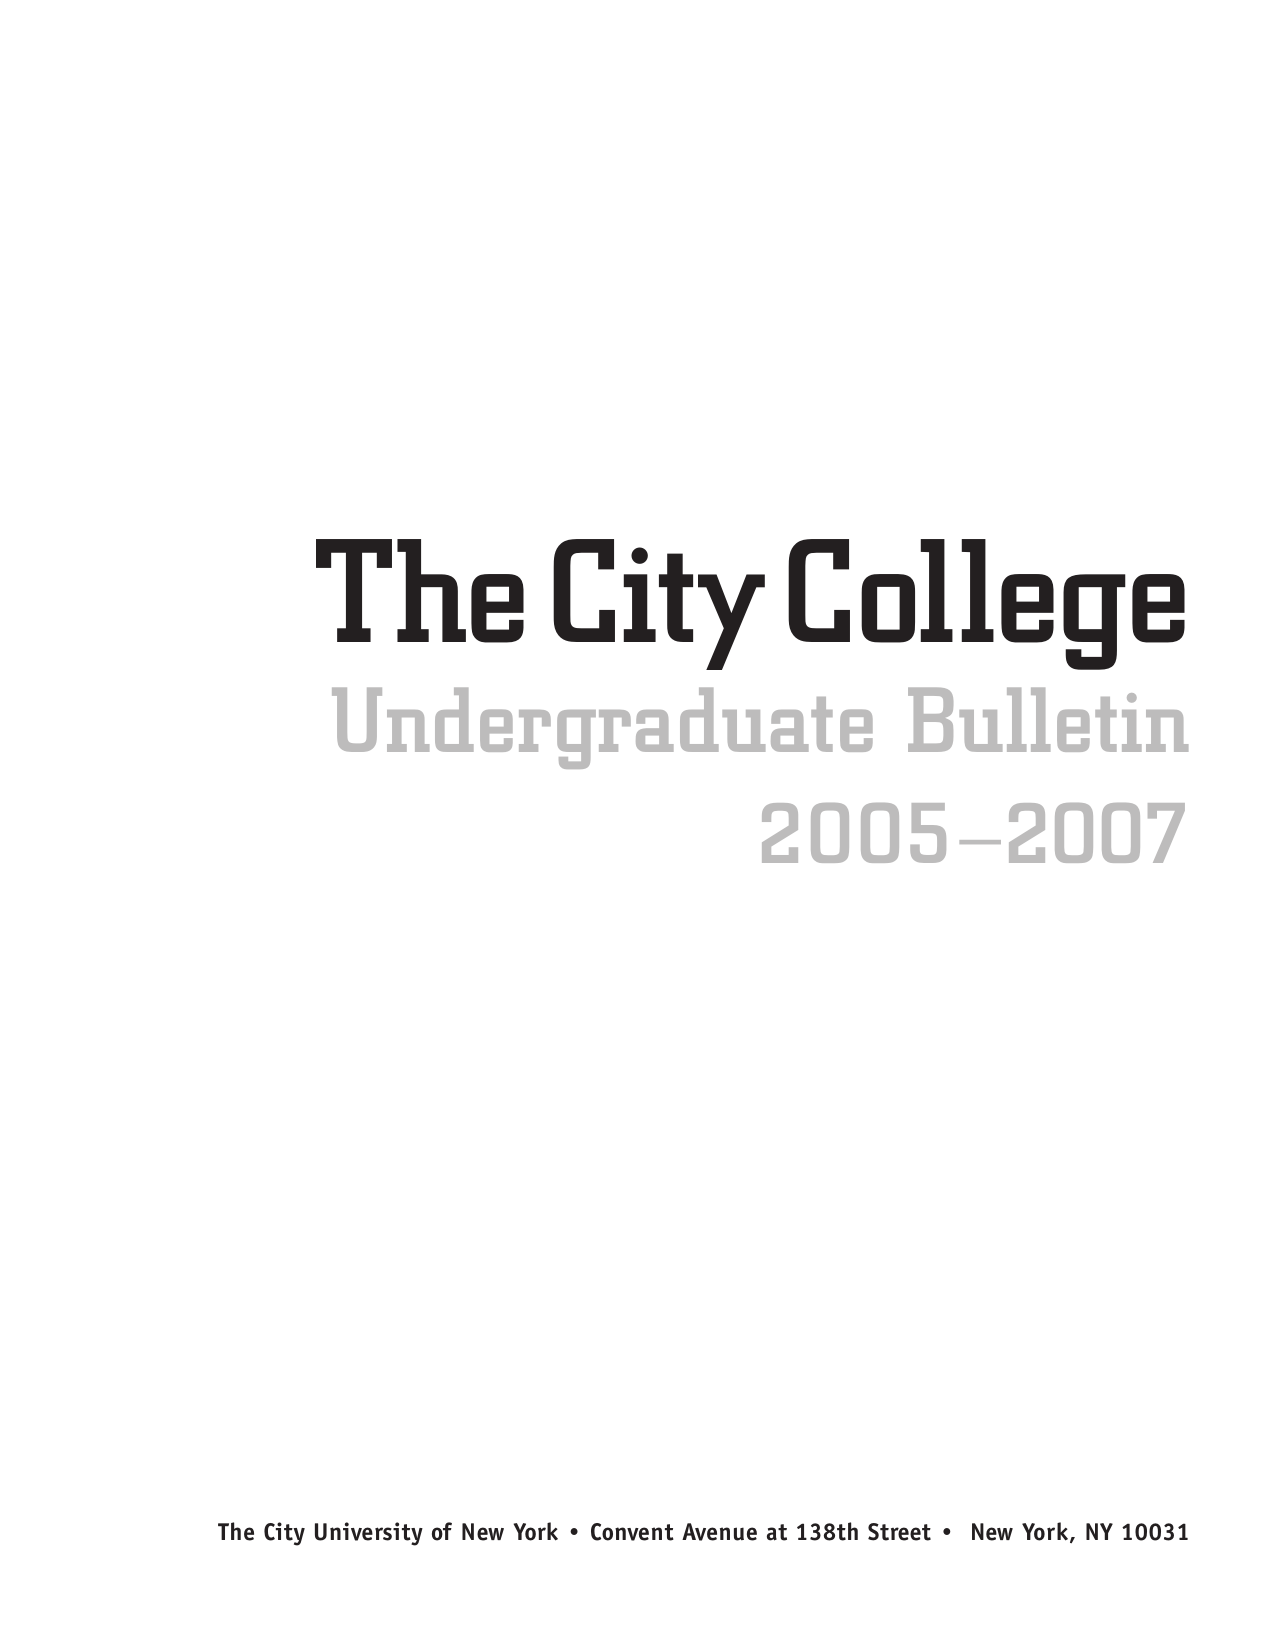 Undergraduate Bulletin - The City College of New York